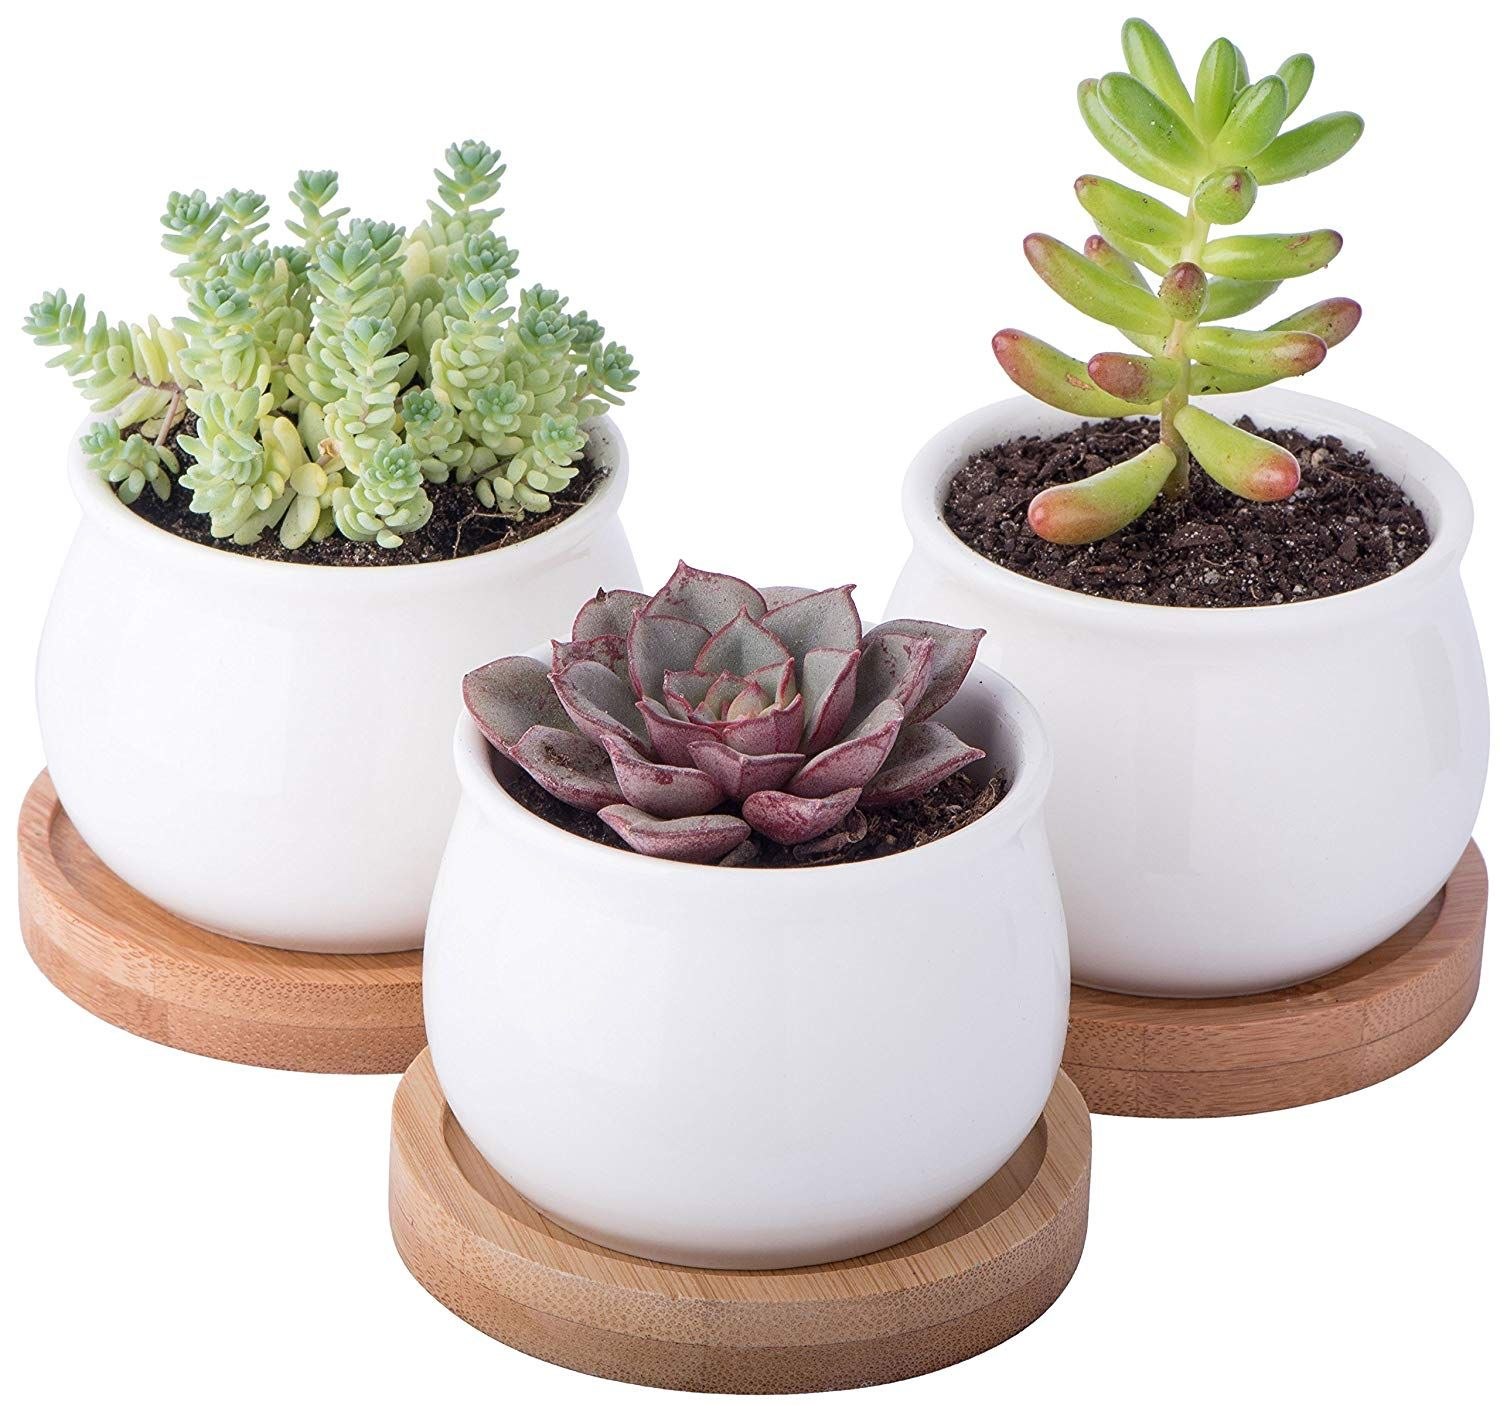 Home Home decoration trends of 2020 : Detailed review and information in  2020 | Ceramic succulent planter, Succulent planter, Succulent pots